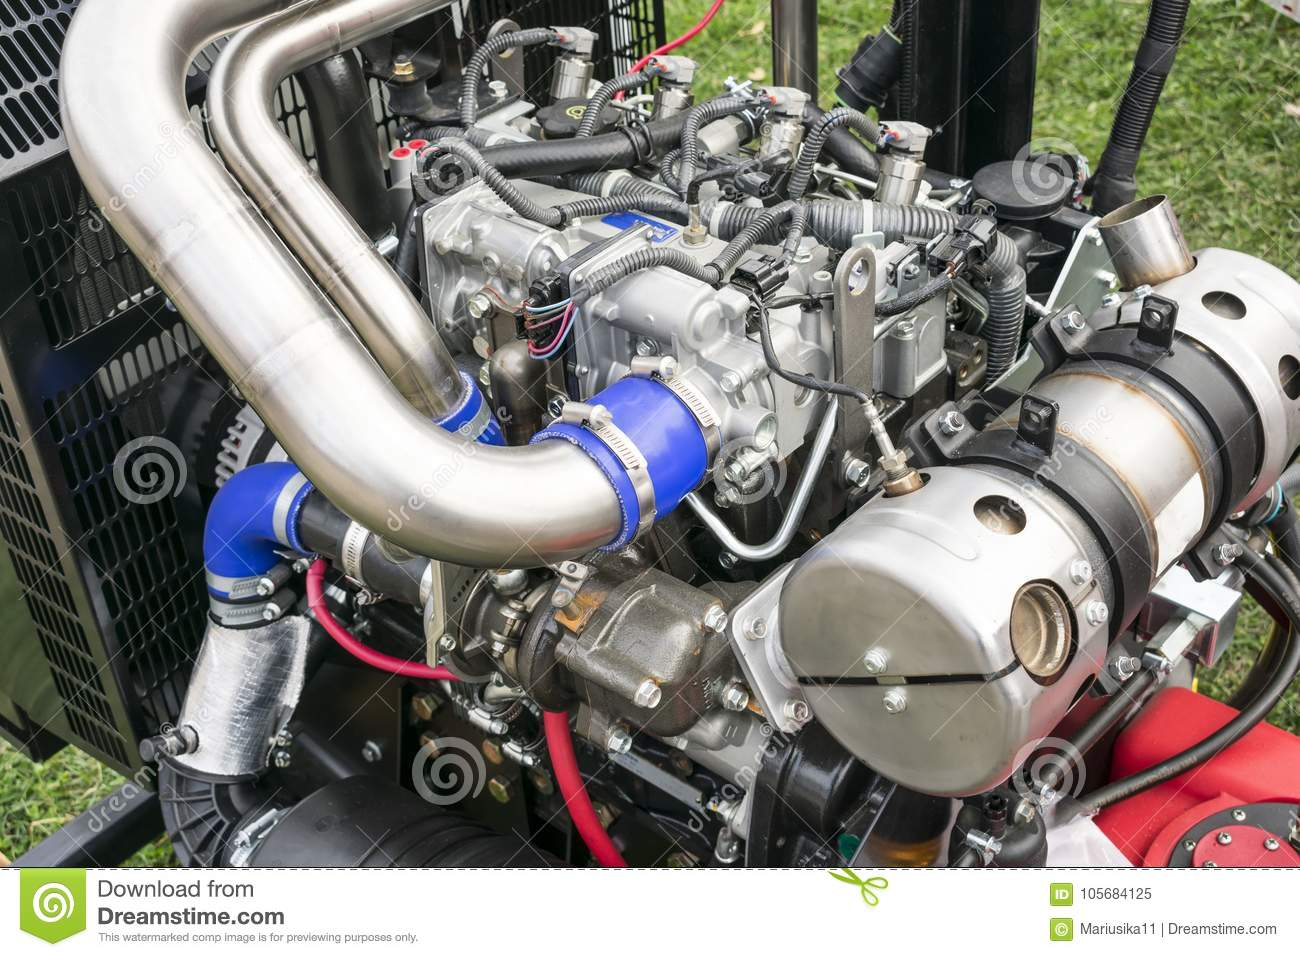 Internal Combustion Engine On Display Stock Image - Image of cables ...